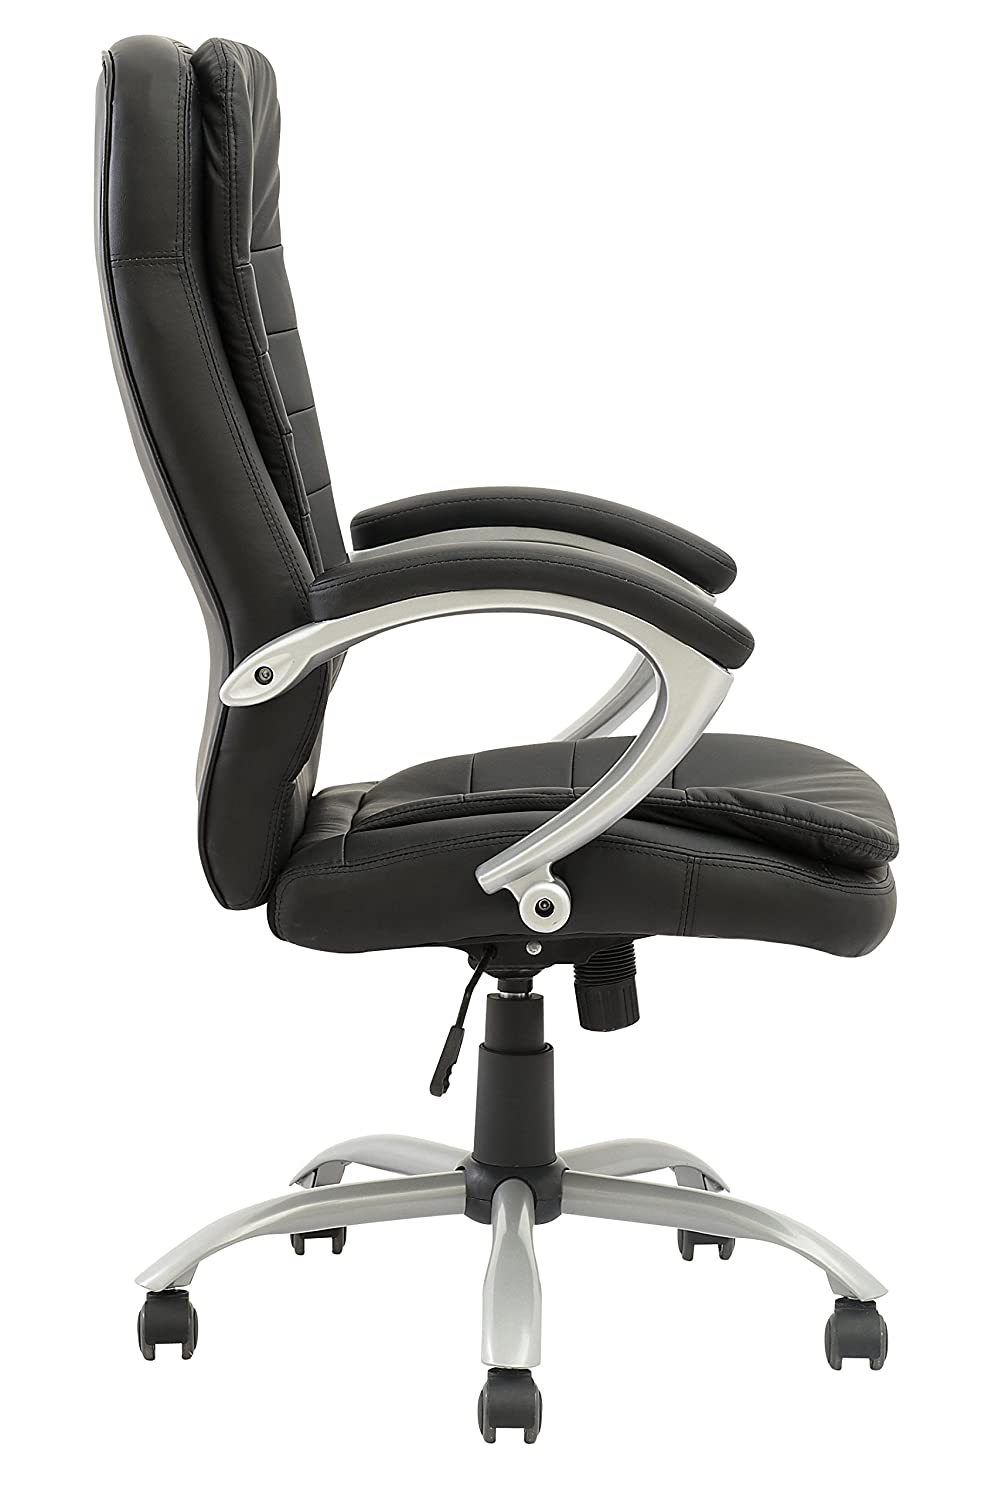 Most comfortable computer chair - Soft Office Chair Most Comfortable Office Chair